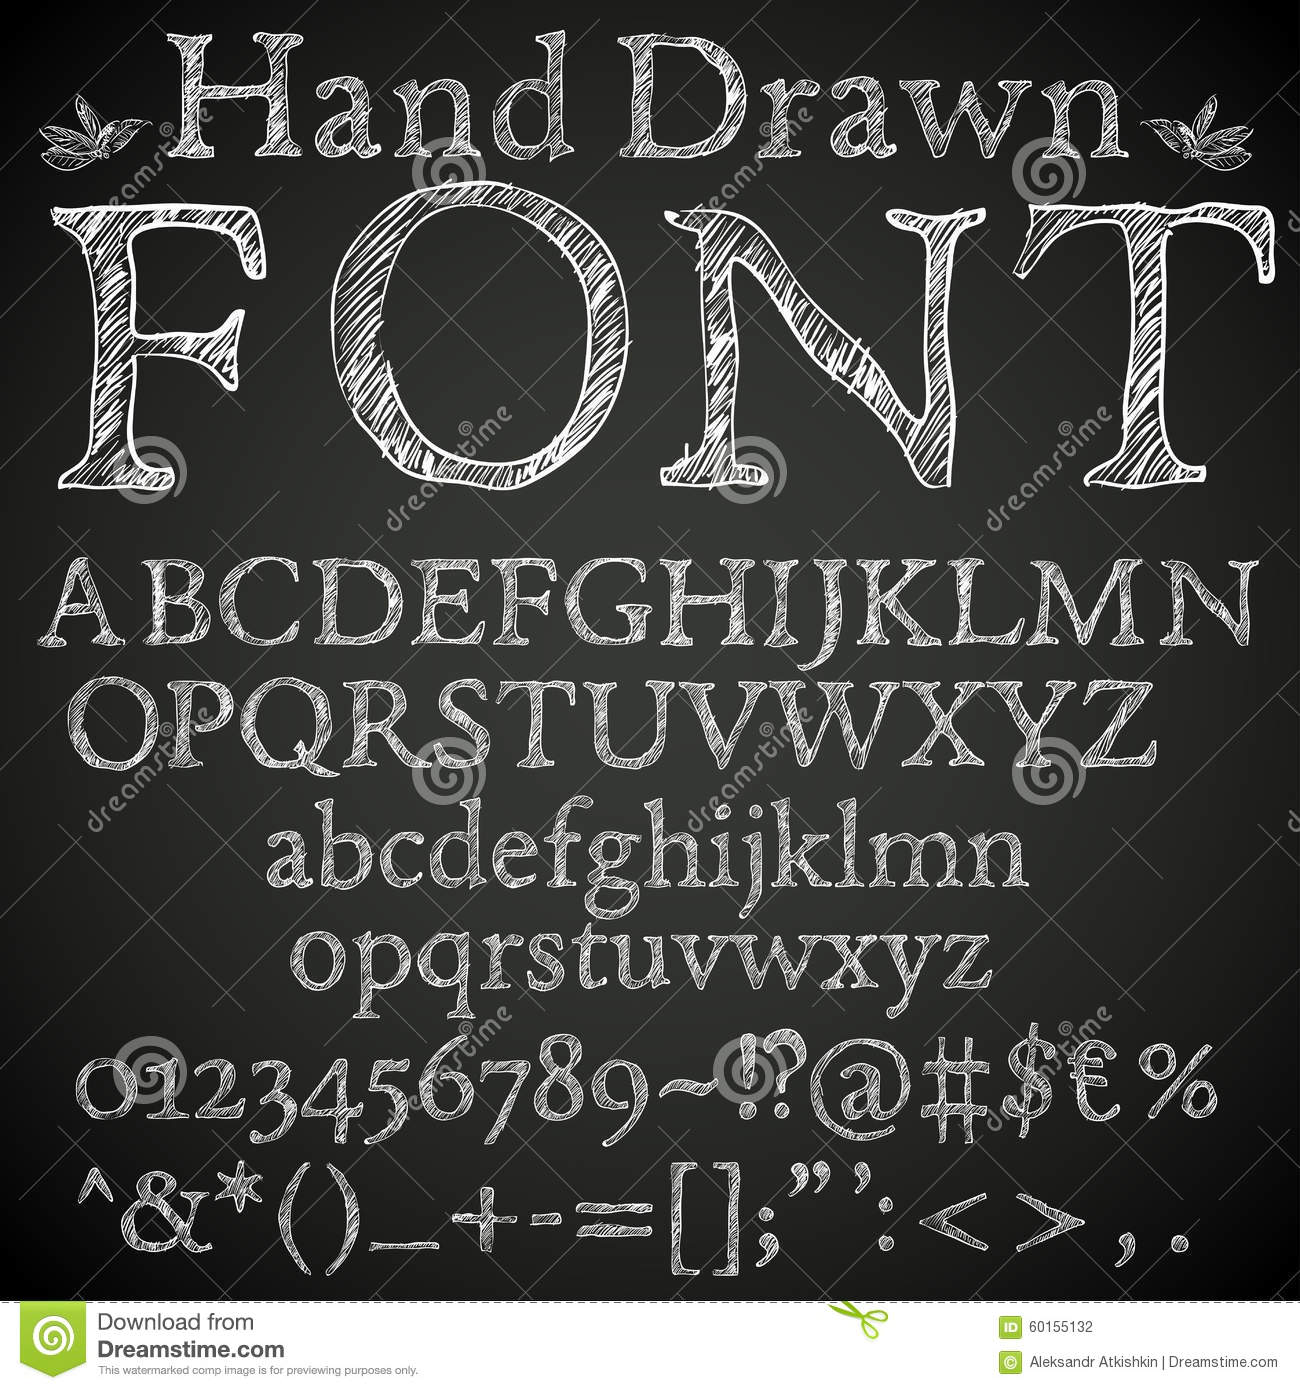 Hand drawn pencil or chalk sketched font letters numbers and symbls vector